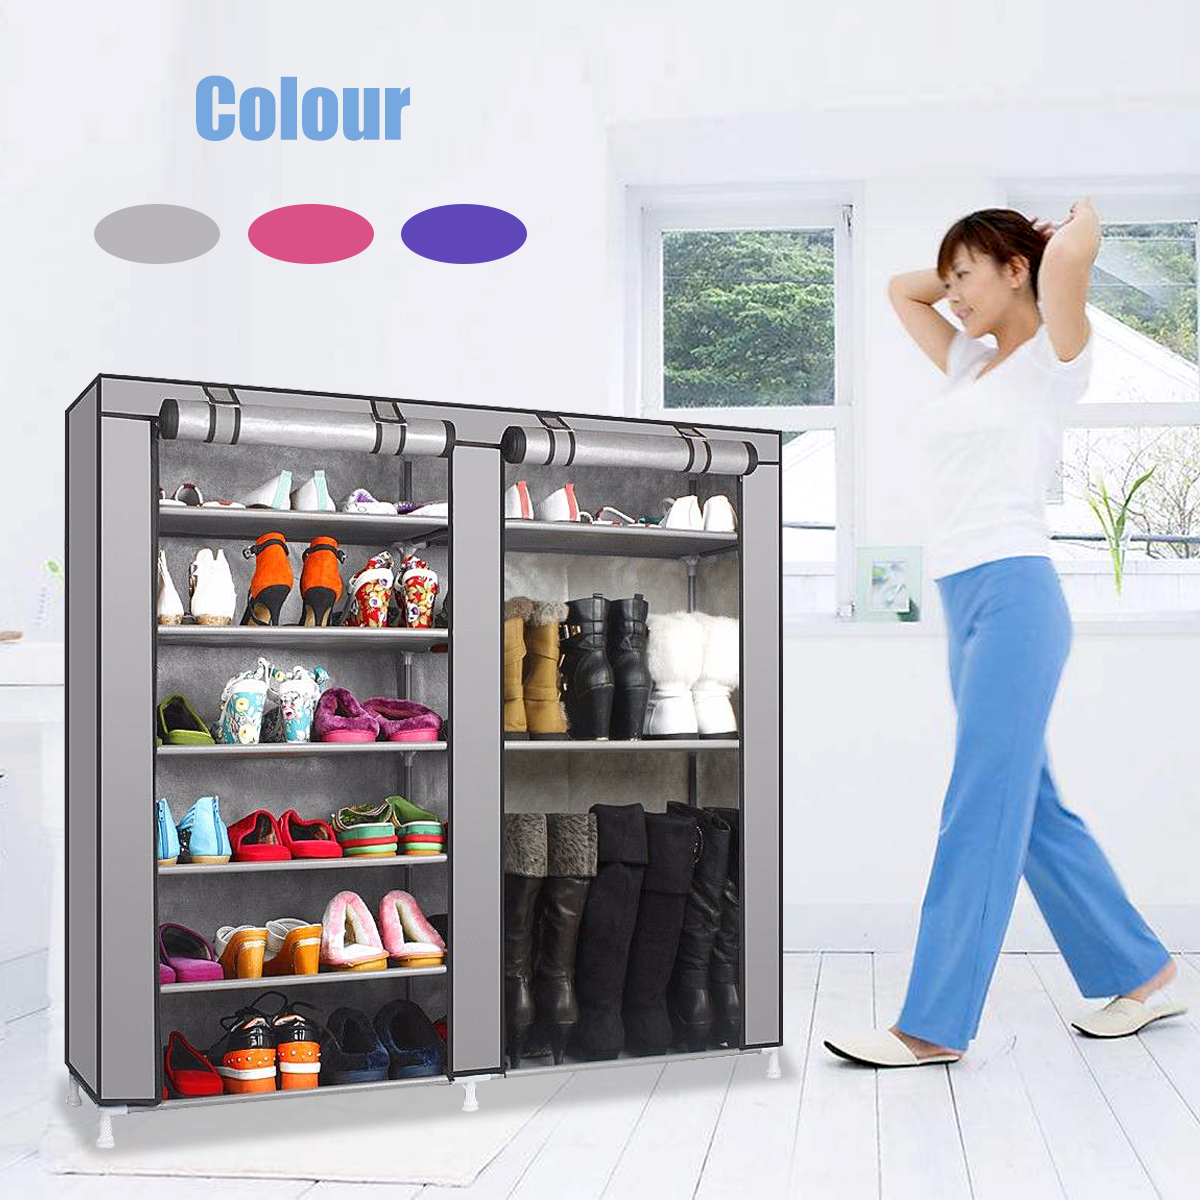 9 Layer 2 Rows Double Shoe Boot Closet Rack Shelf Storage Organizer Cabinet shoeorganizer Portable with Fabric Cover